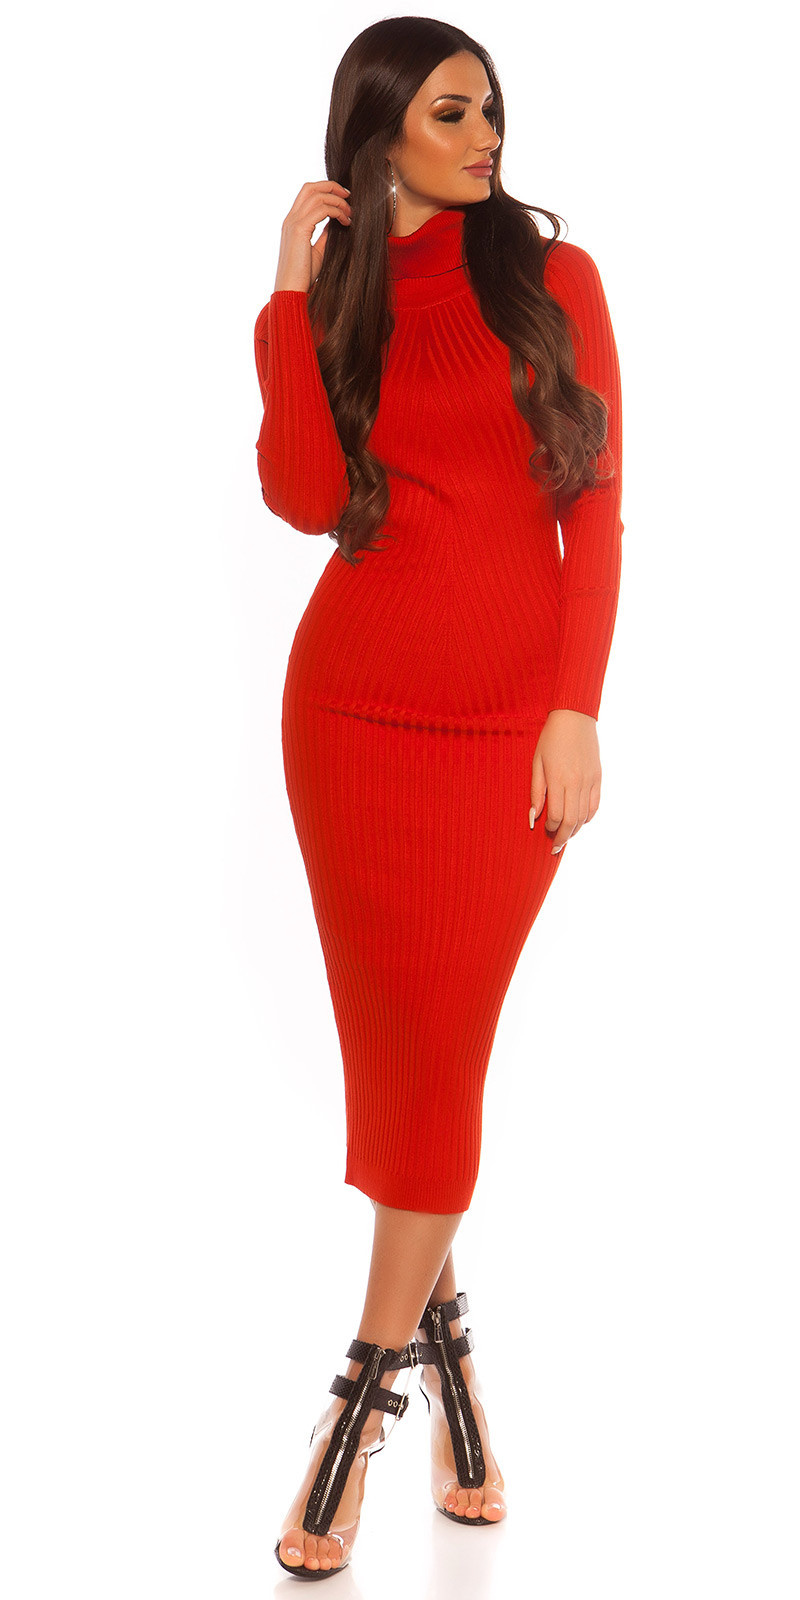 Sexy Longsleeve Turtleneck Knit dress Red